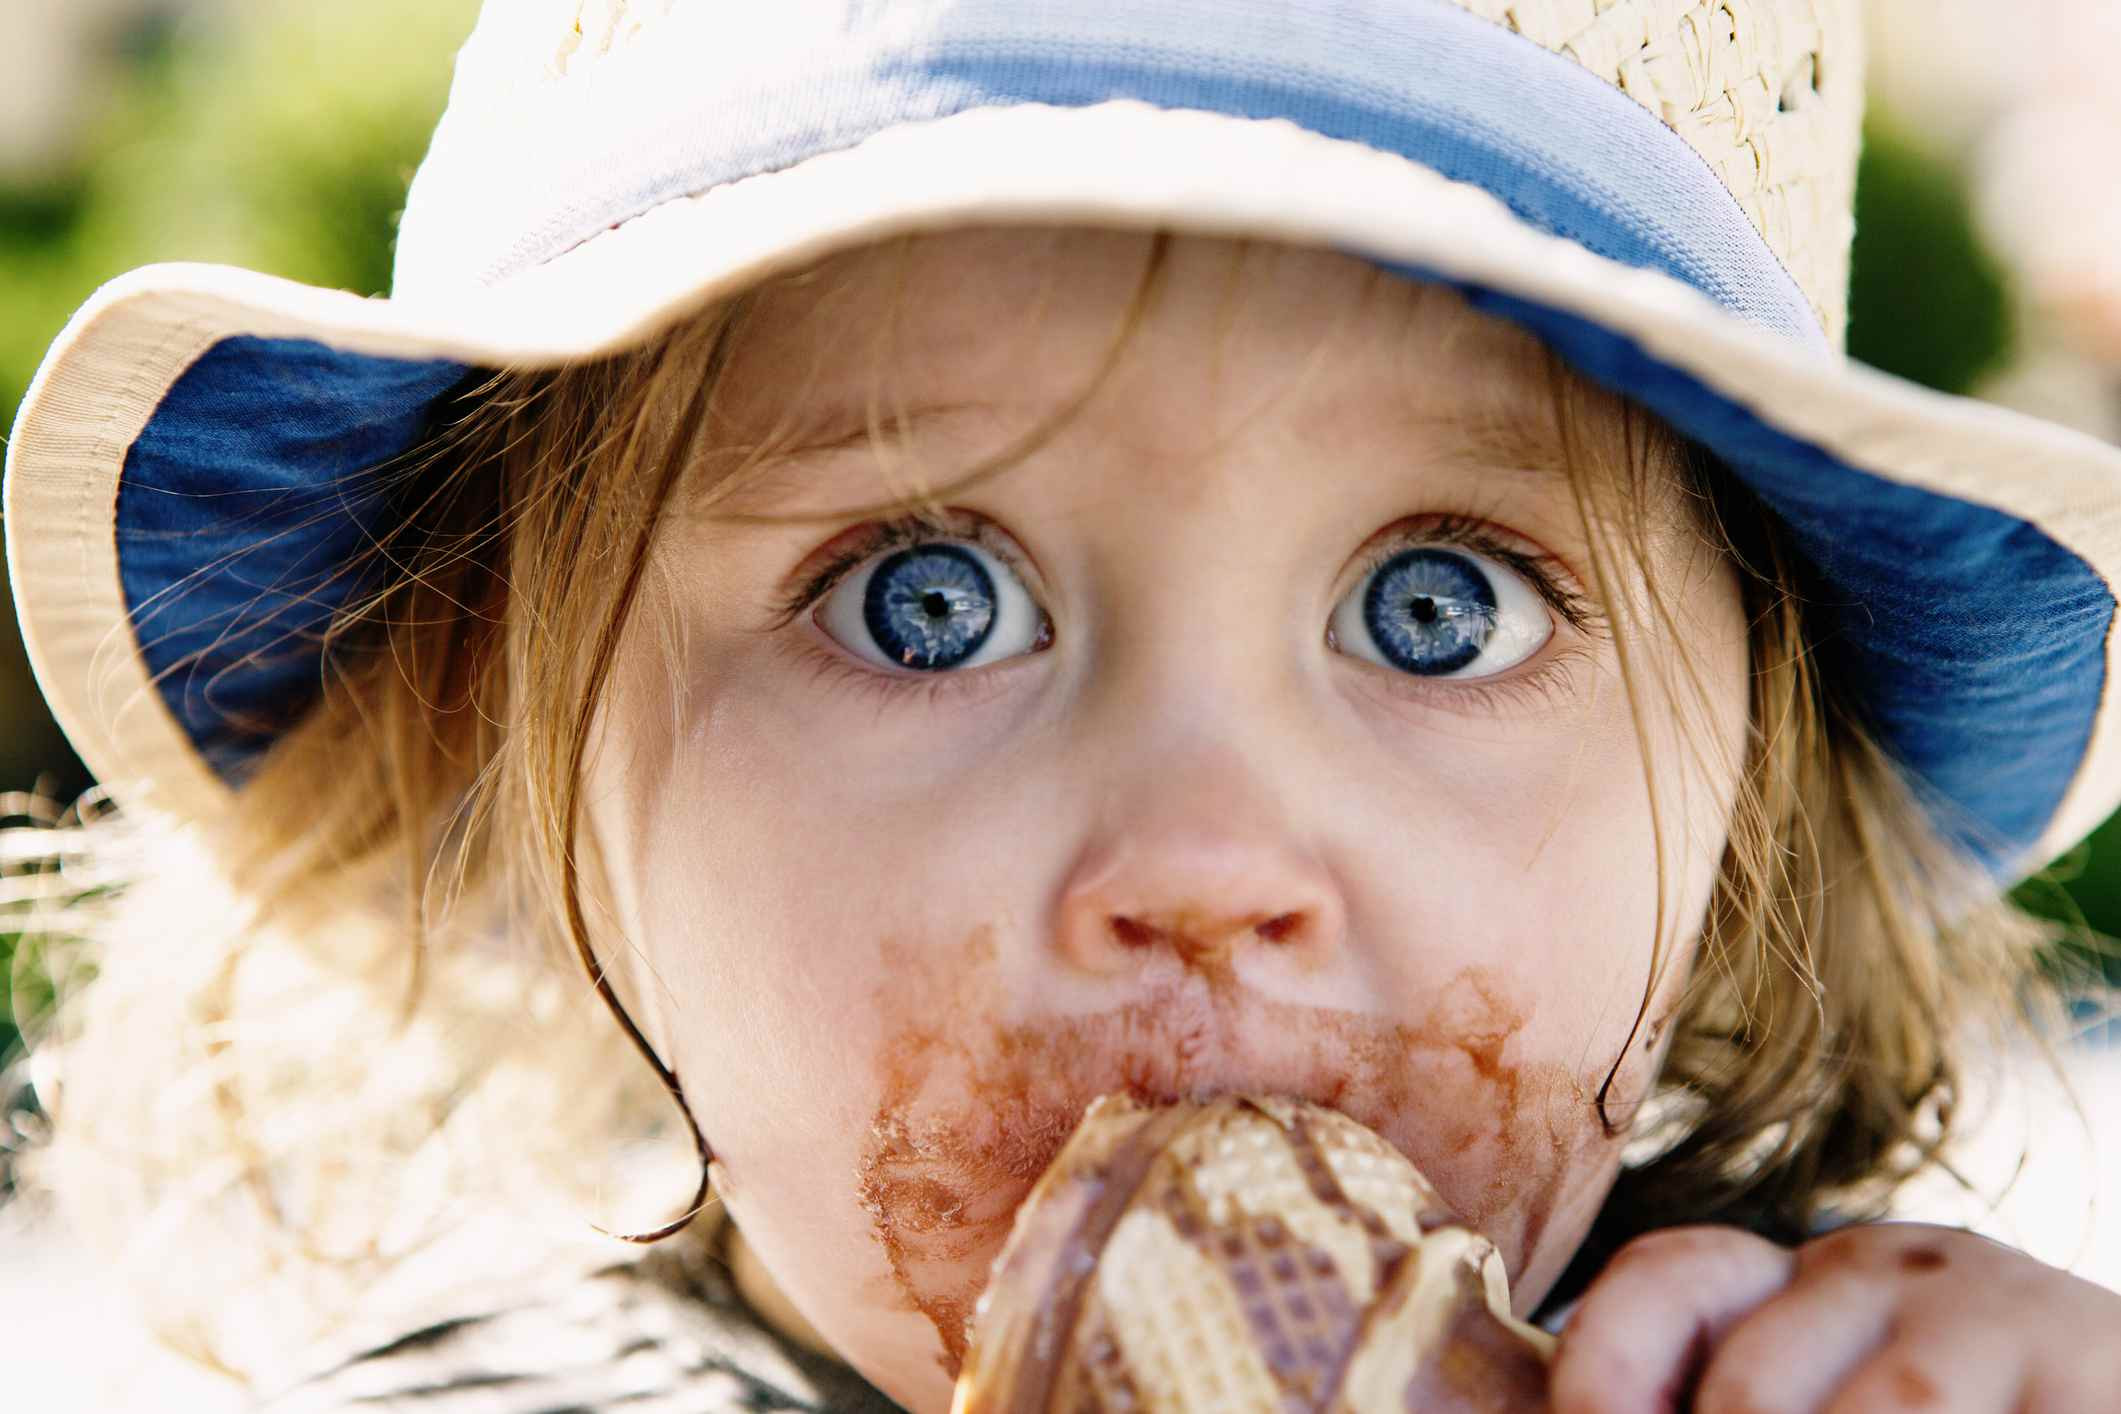 Ice cream heaven - child with big blue eyes messily eating ice cream